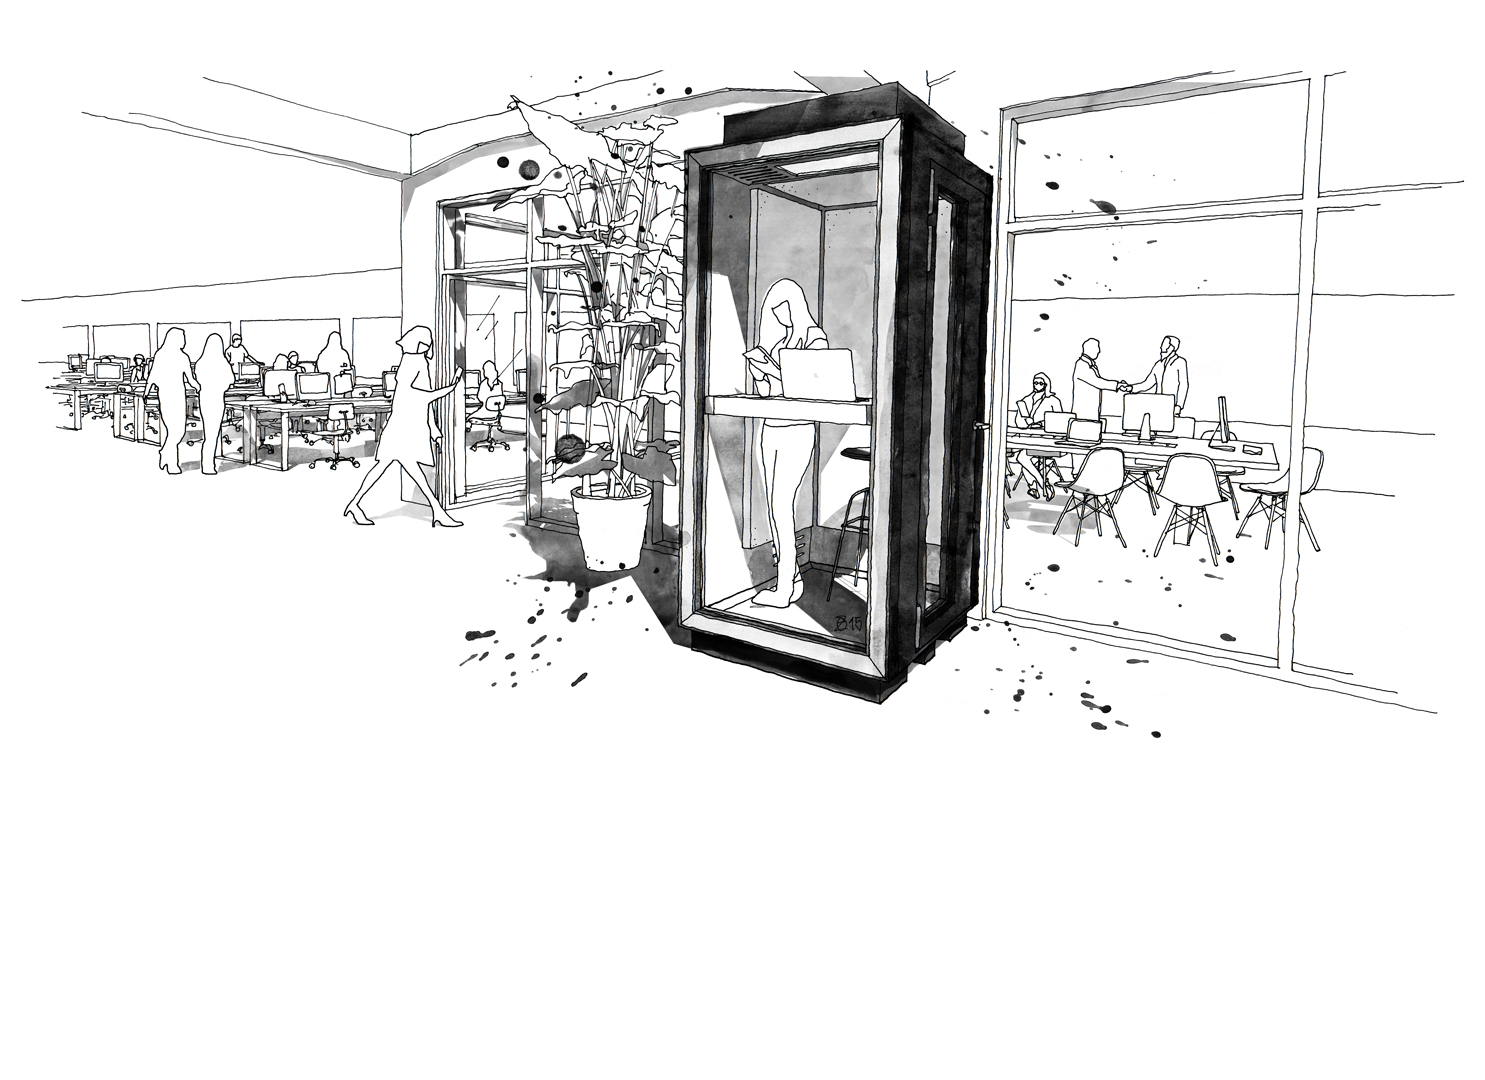 KERTI Phone booth for open-plan office environments and co-working spaces. An acoustically engineered system of soundproof glass and wall elements. All interior features can be customised to individual needs. Design and furniture design illustration by Studio KERTI